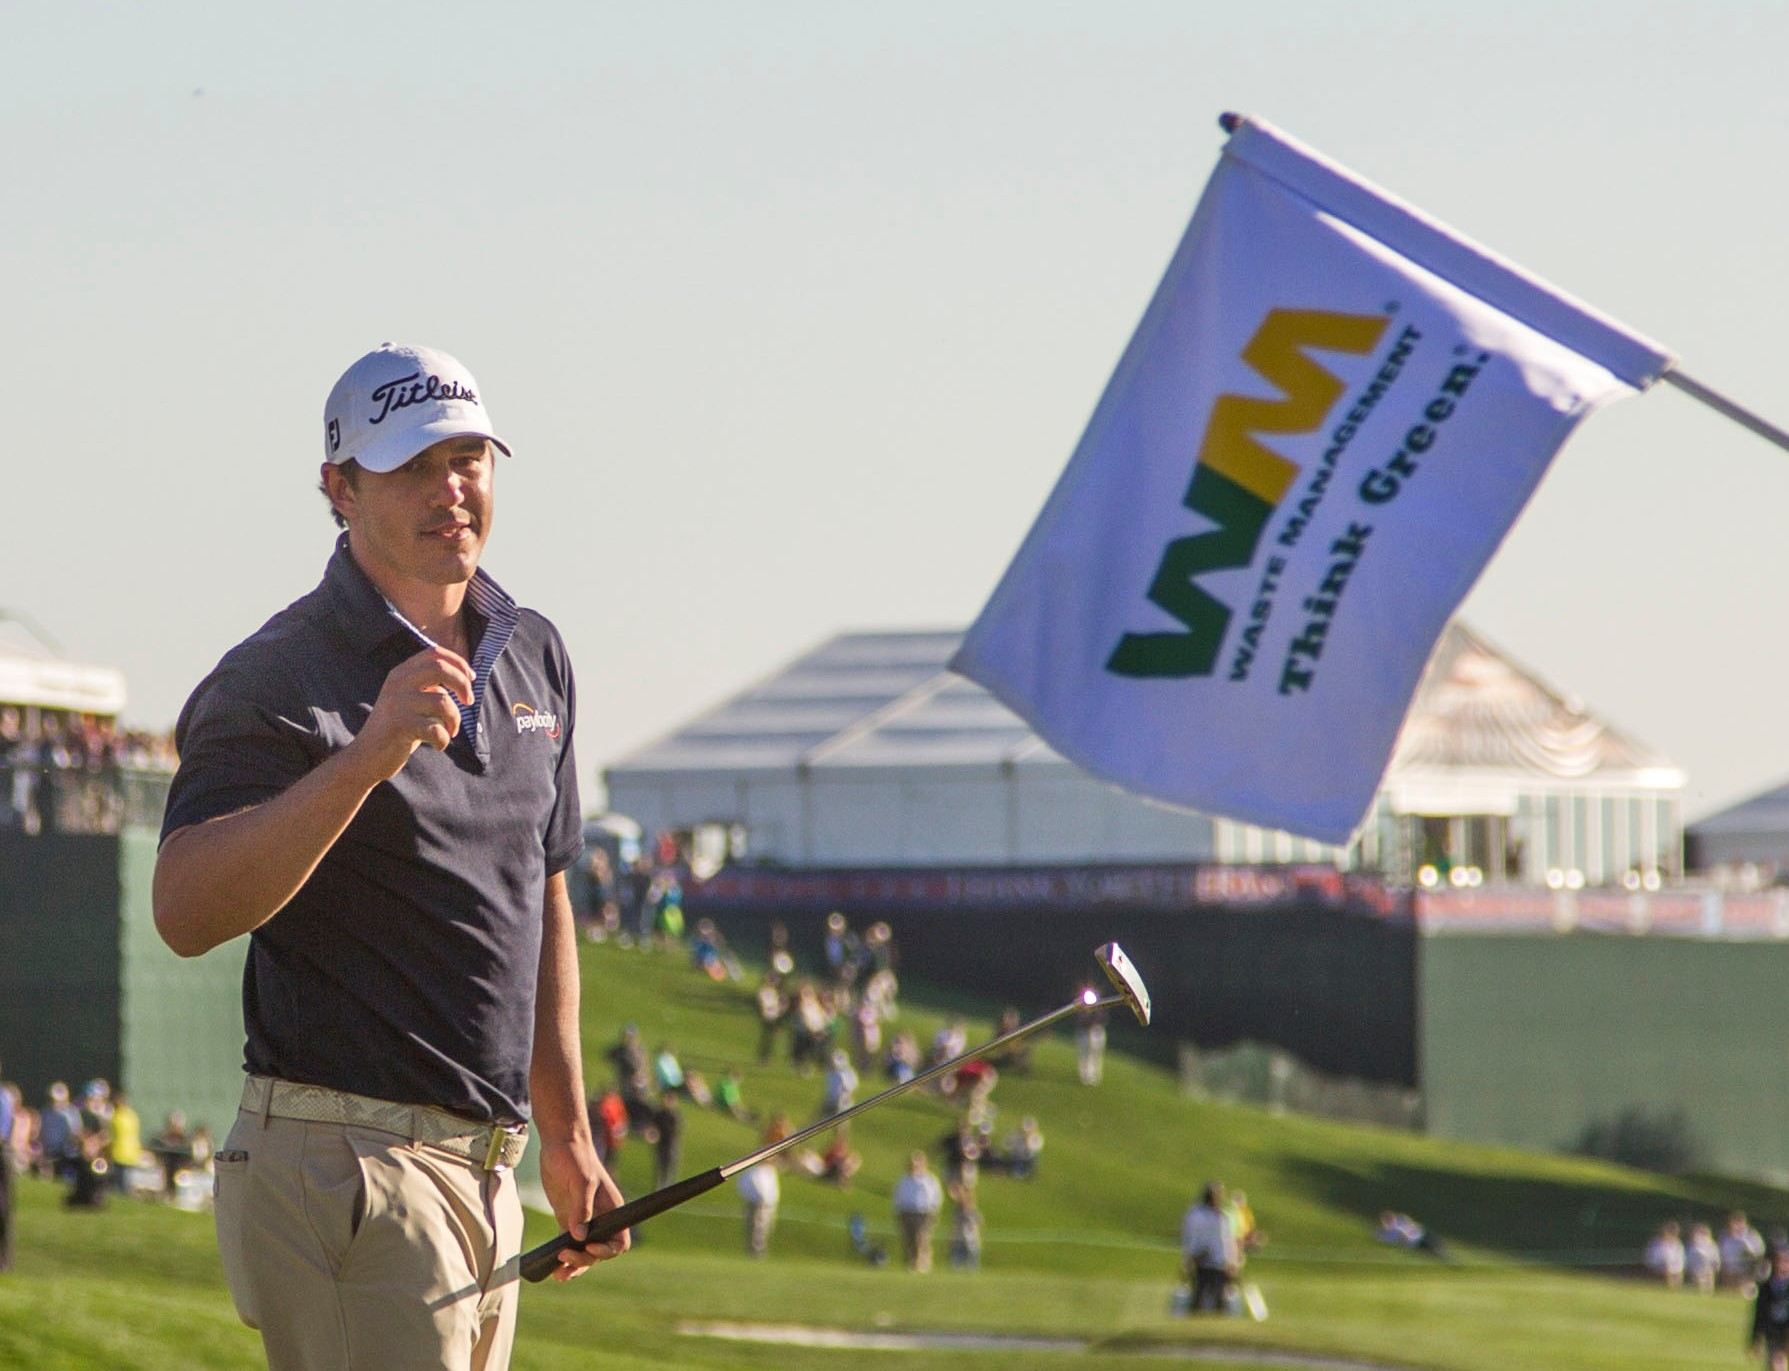 Feb 1, 2015; Scottsdale, AZ, USA; Brooks Koepka reacts to making par and winning the Phoenix Open on the eighteenth hole during the final round of the Waste Management Phoenix Open at TPC Scottsdale. Mandatory Credit: Patrick Breen-Arizona Republic via USA TODAY Sports